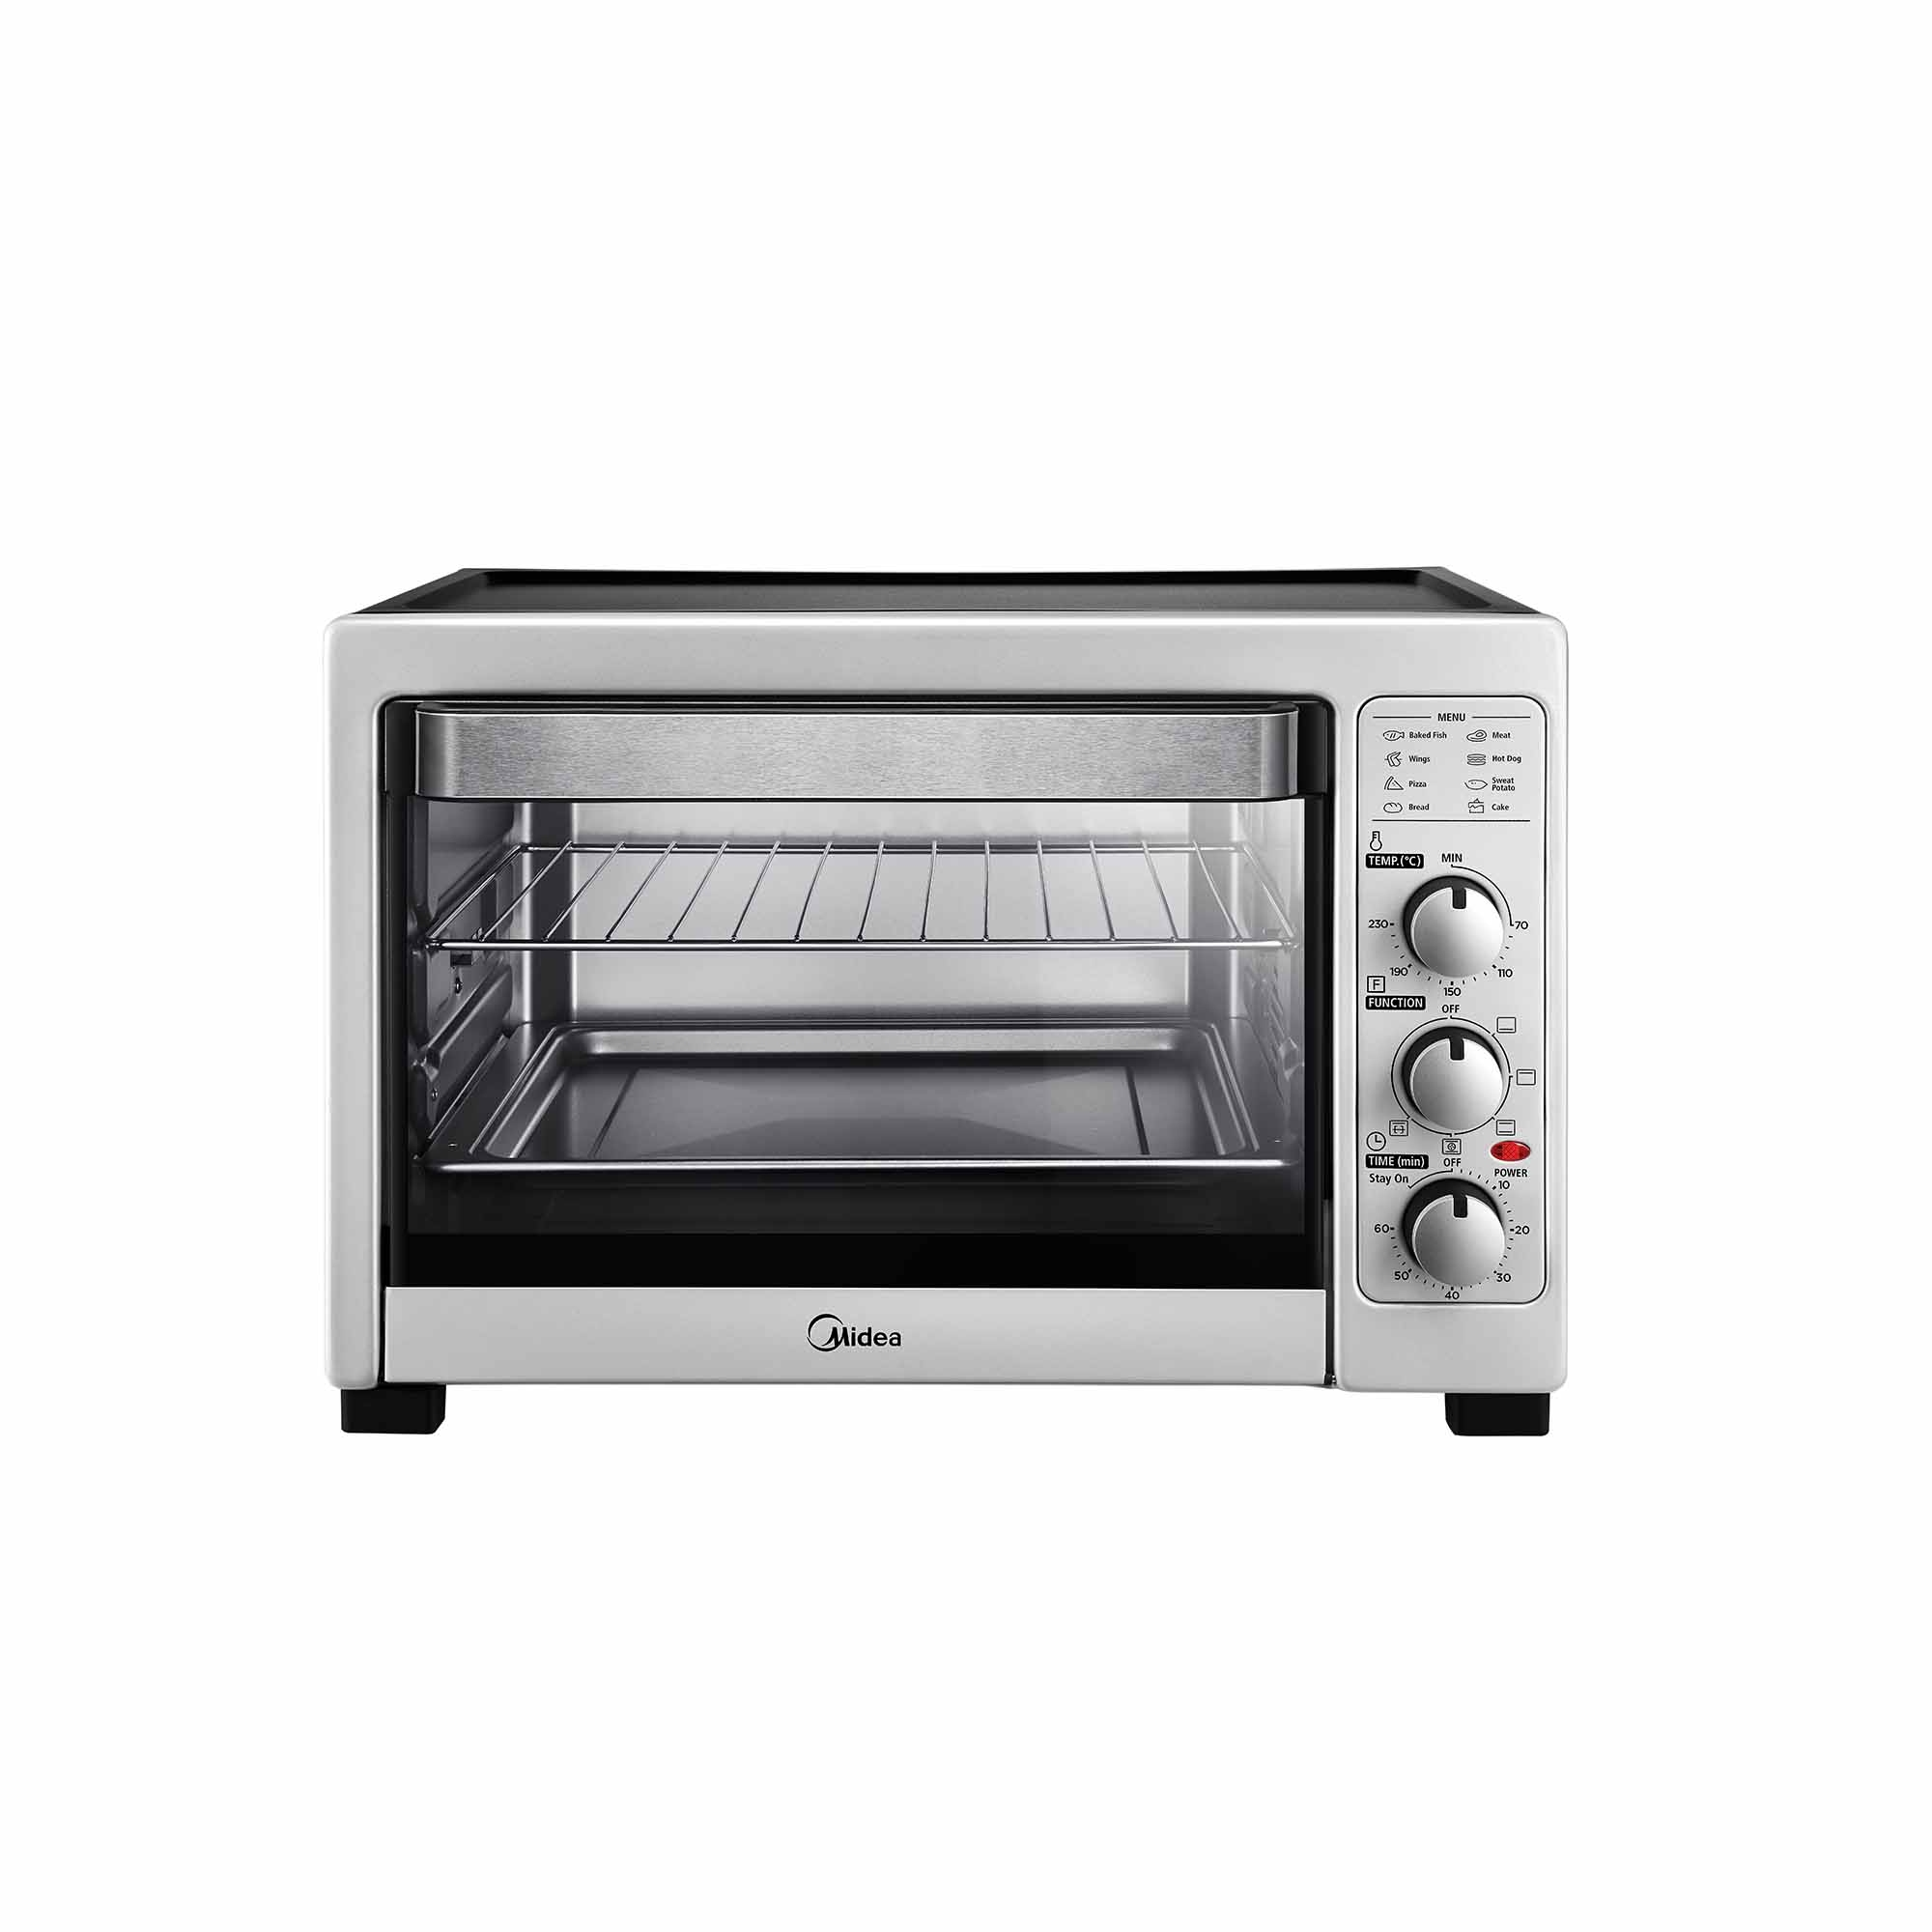 Midea Microwave Convection Oven Manual Bestmicrowave